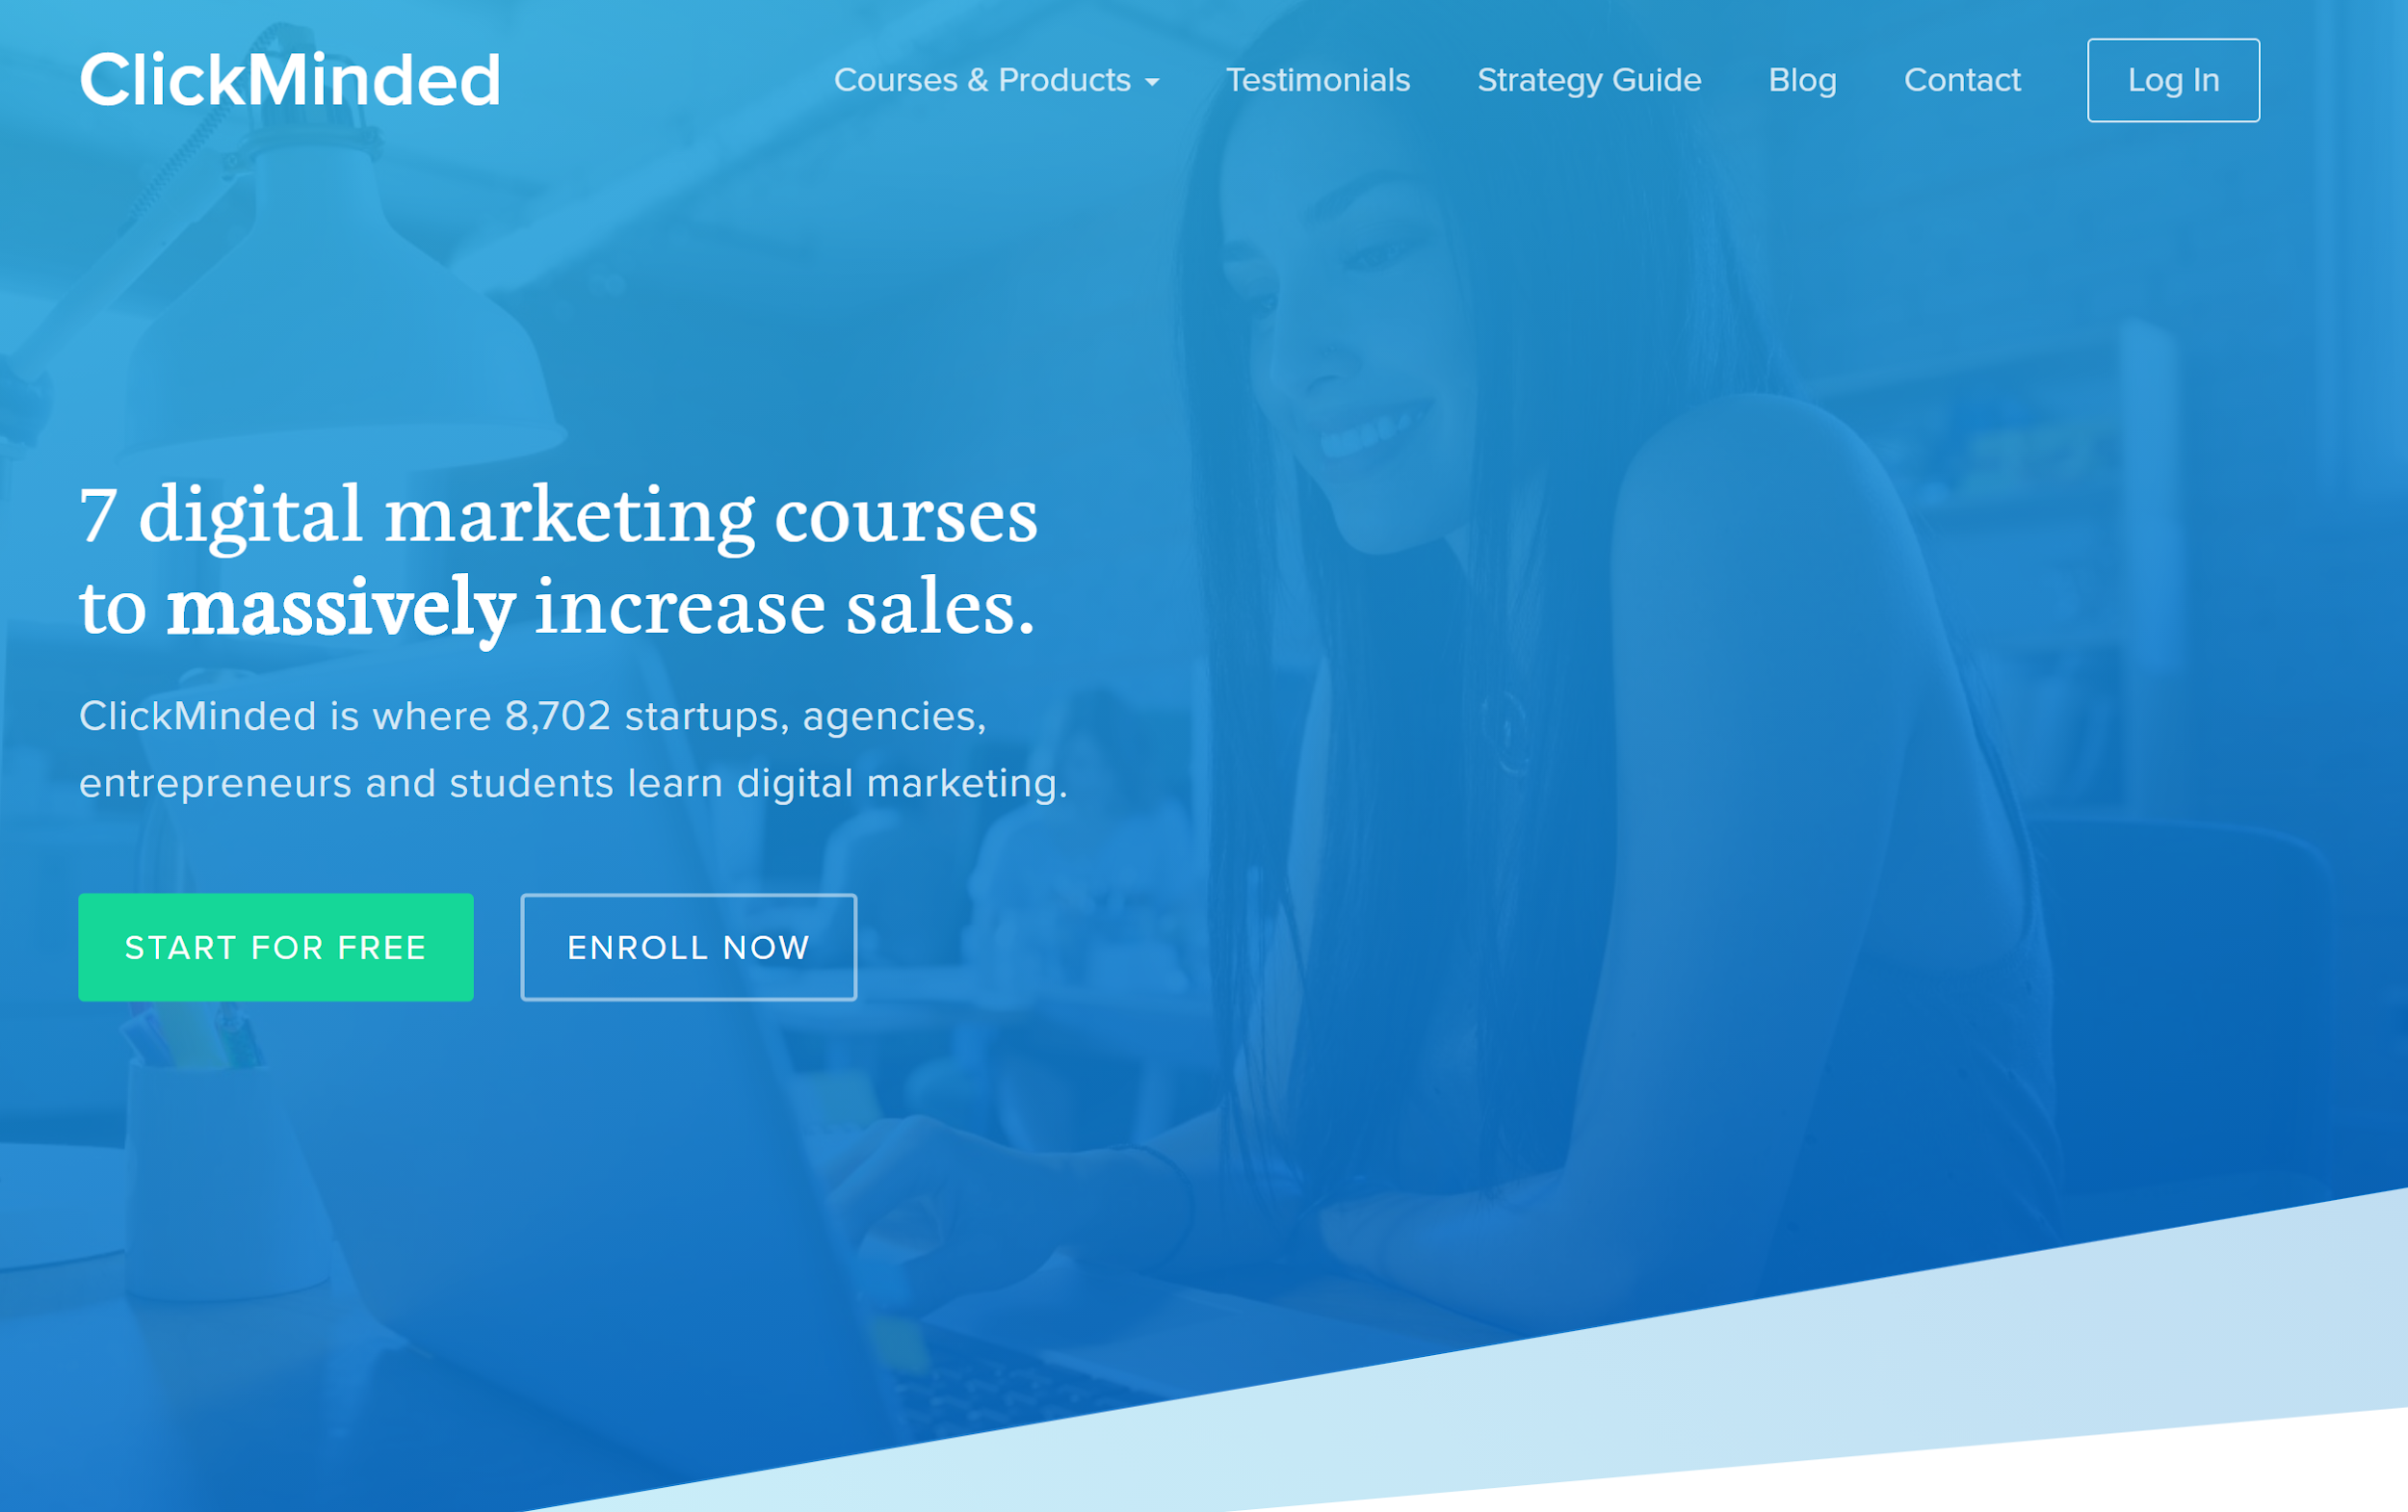 ClickMinded Digital Marketing Course